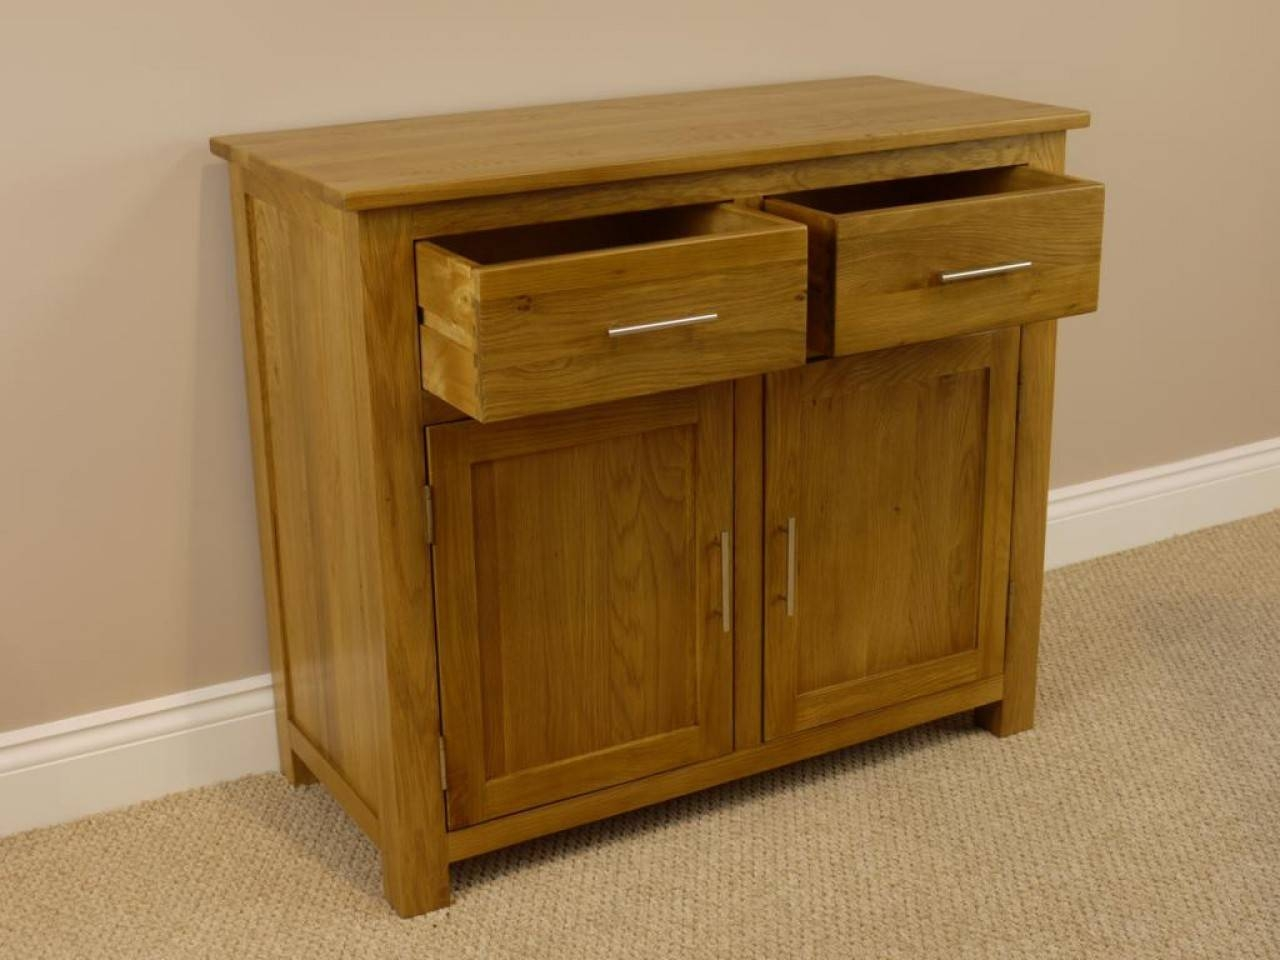 Oak Sideboard Drawers : Classy Oak Sideboard Furniture – Wood With Most Up To Date Solid Oak Small Sideboards (View 8 of 15)